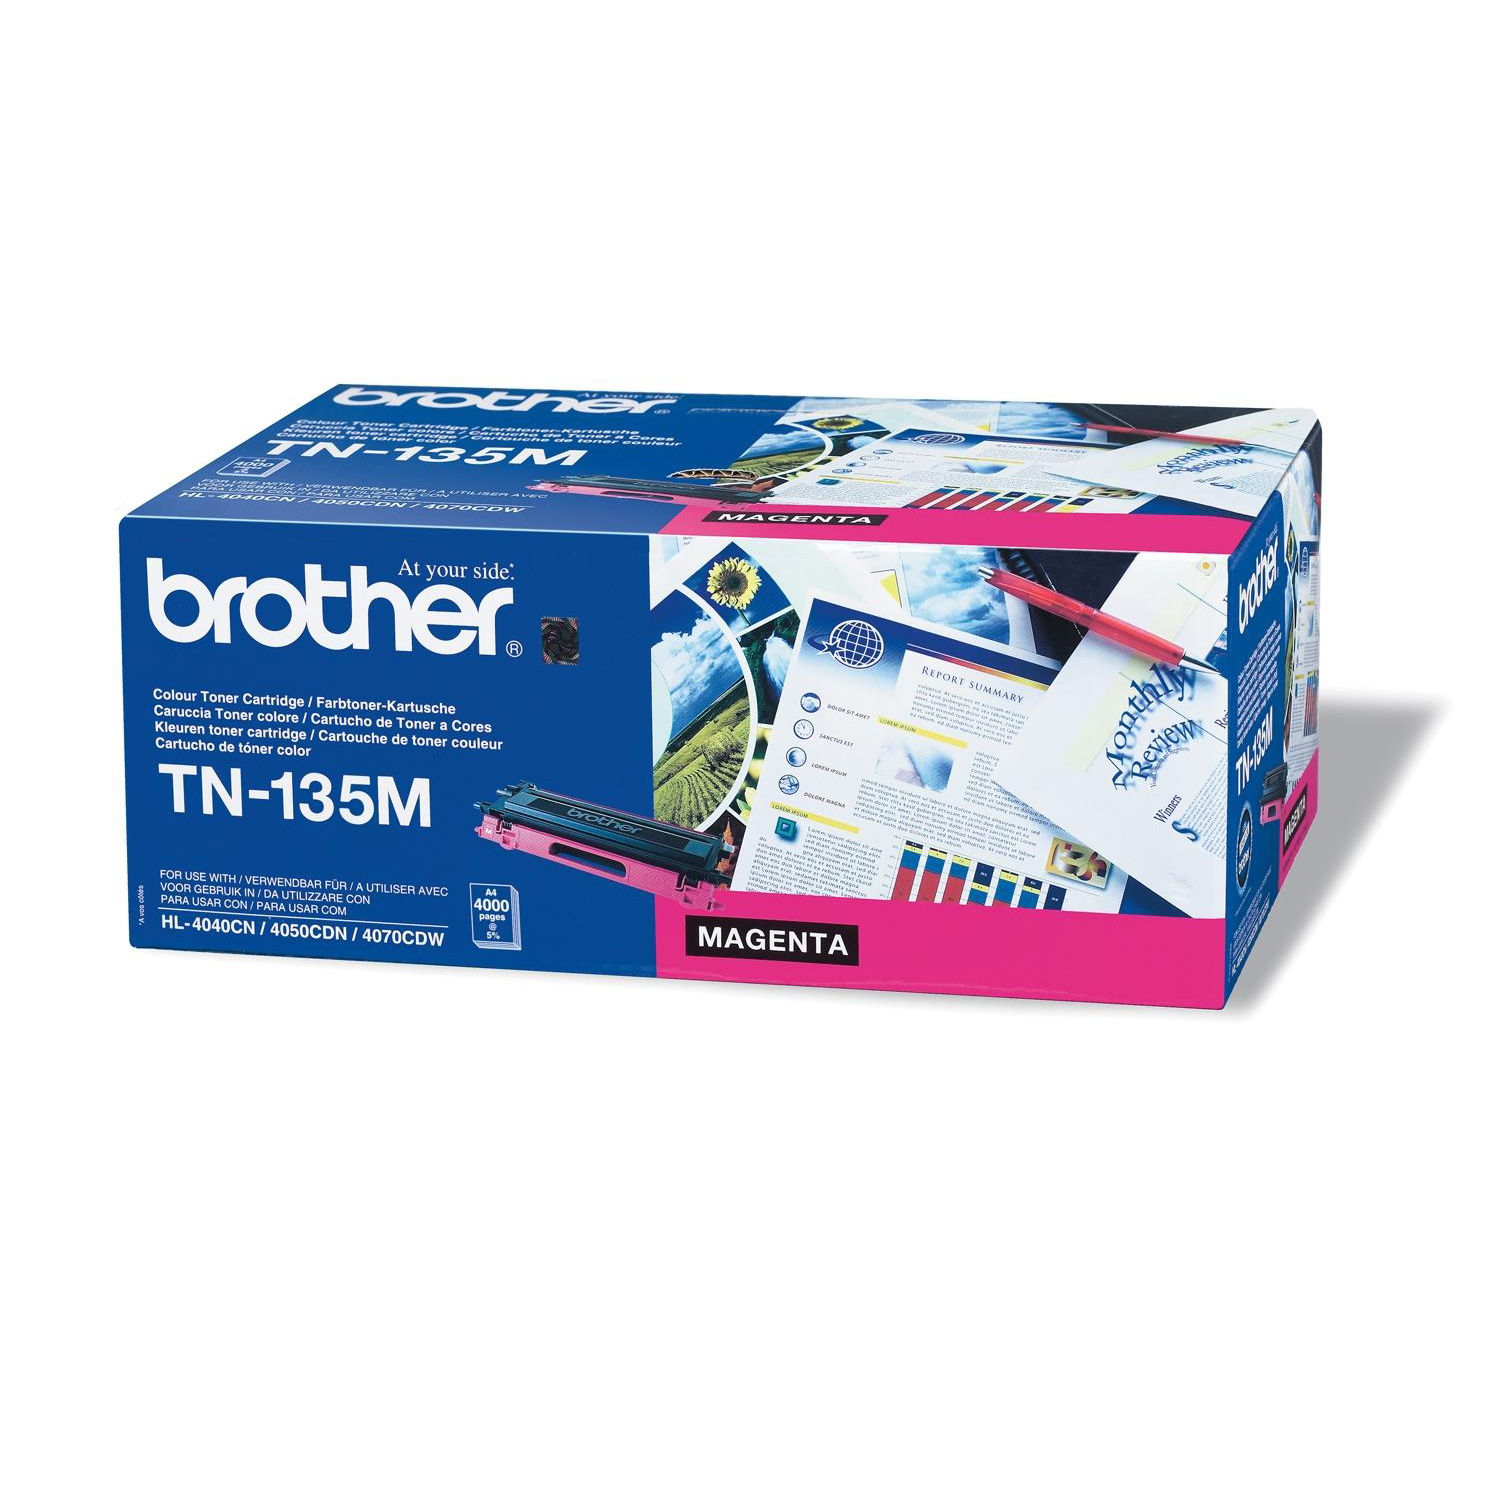 Brother Laser Toner Cartridge Page Life 4000pp Magenta Ref TN135M